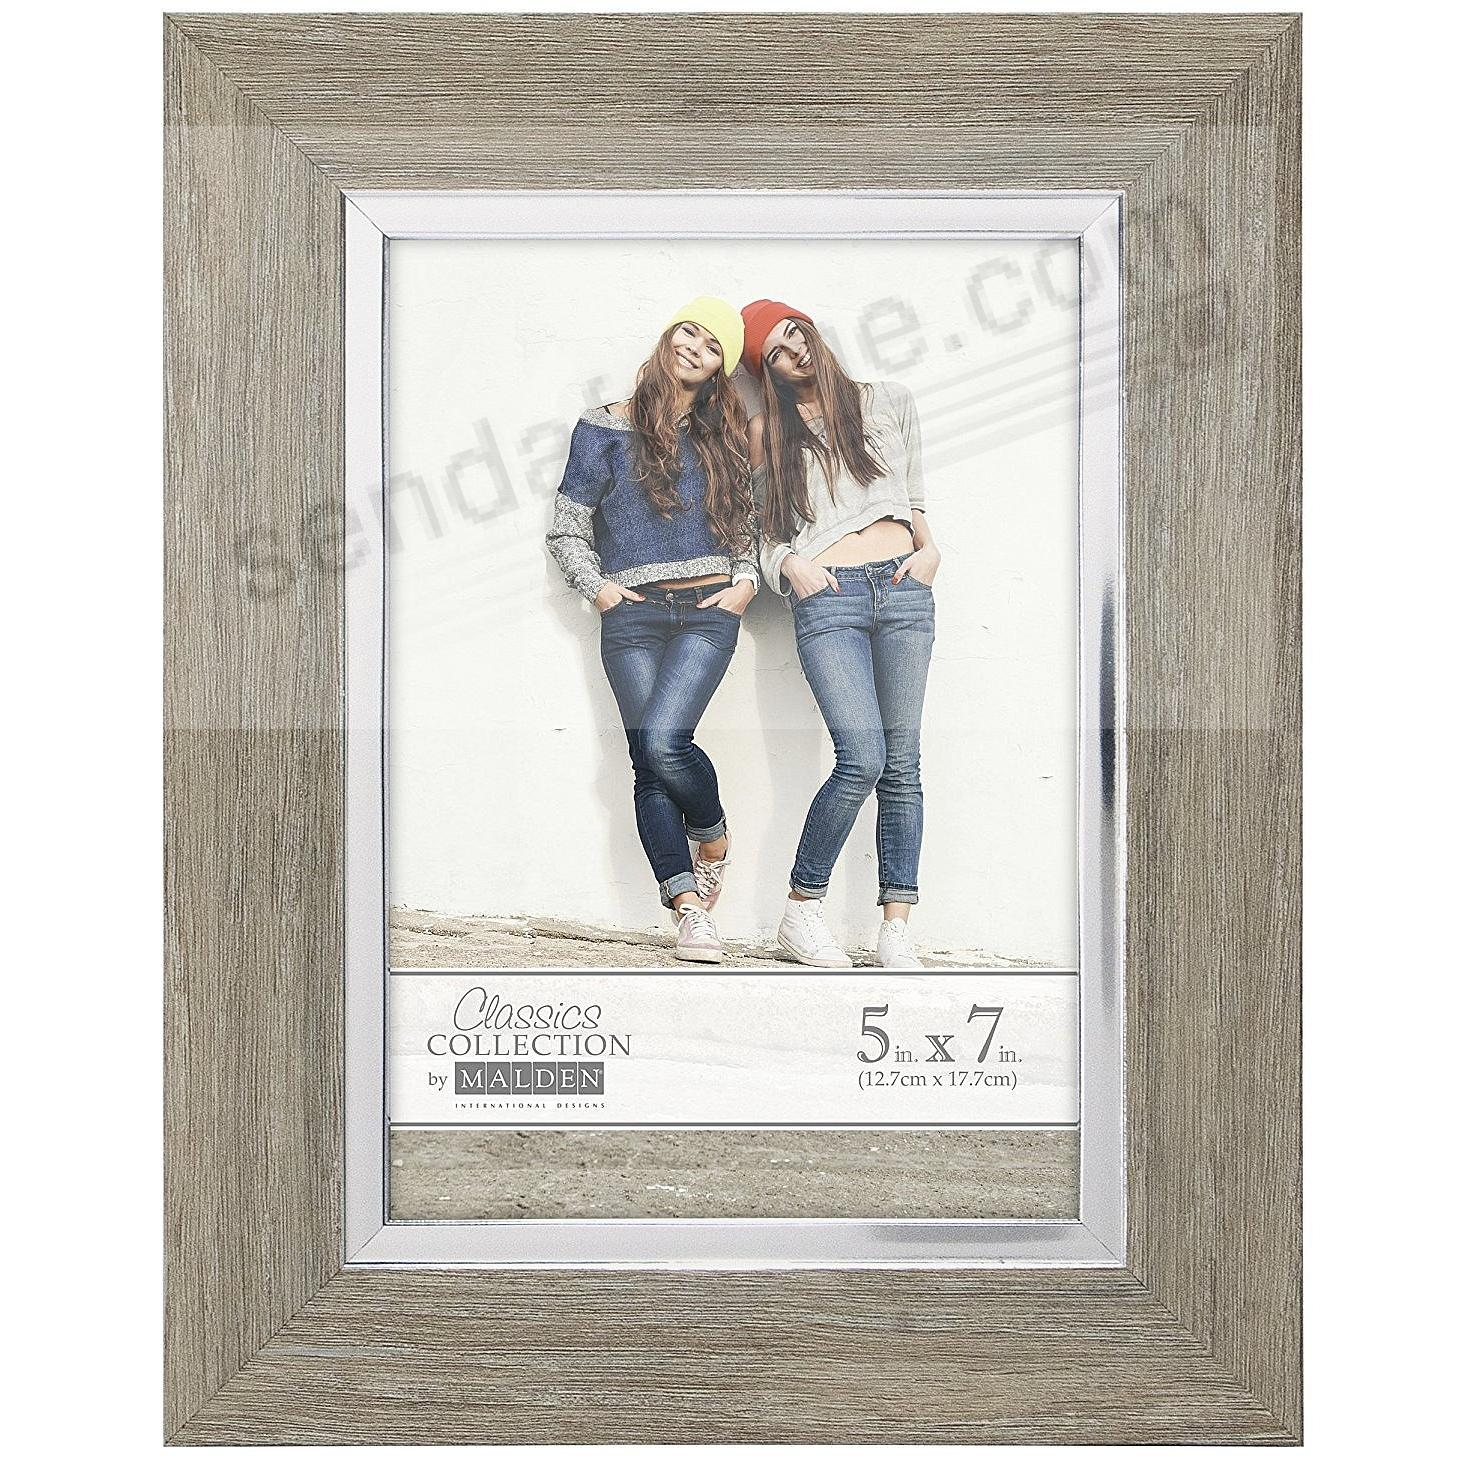 SILVER LINING 5x7 frame by Malden Design®